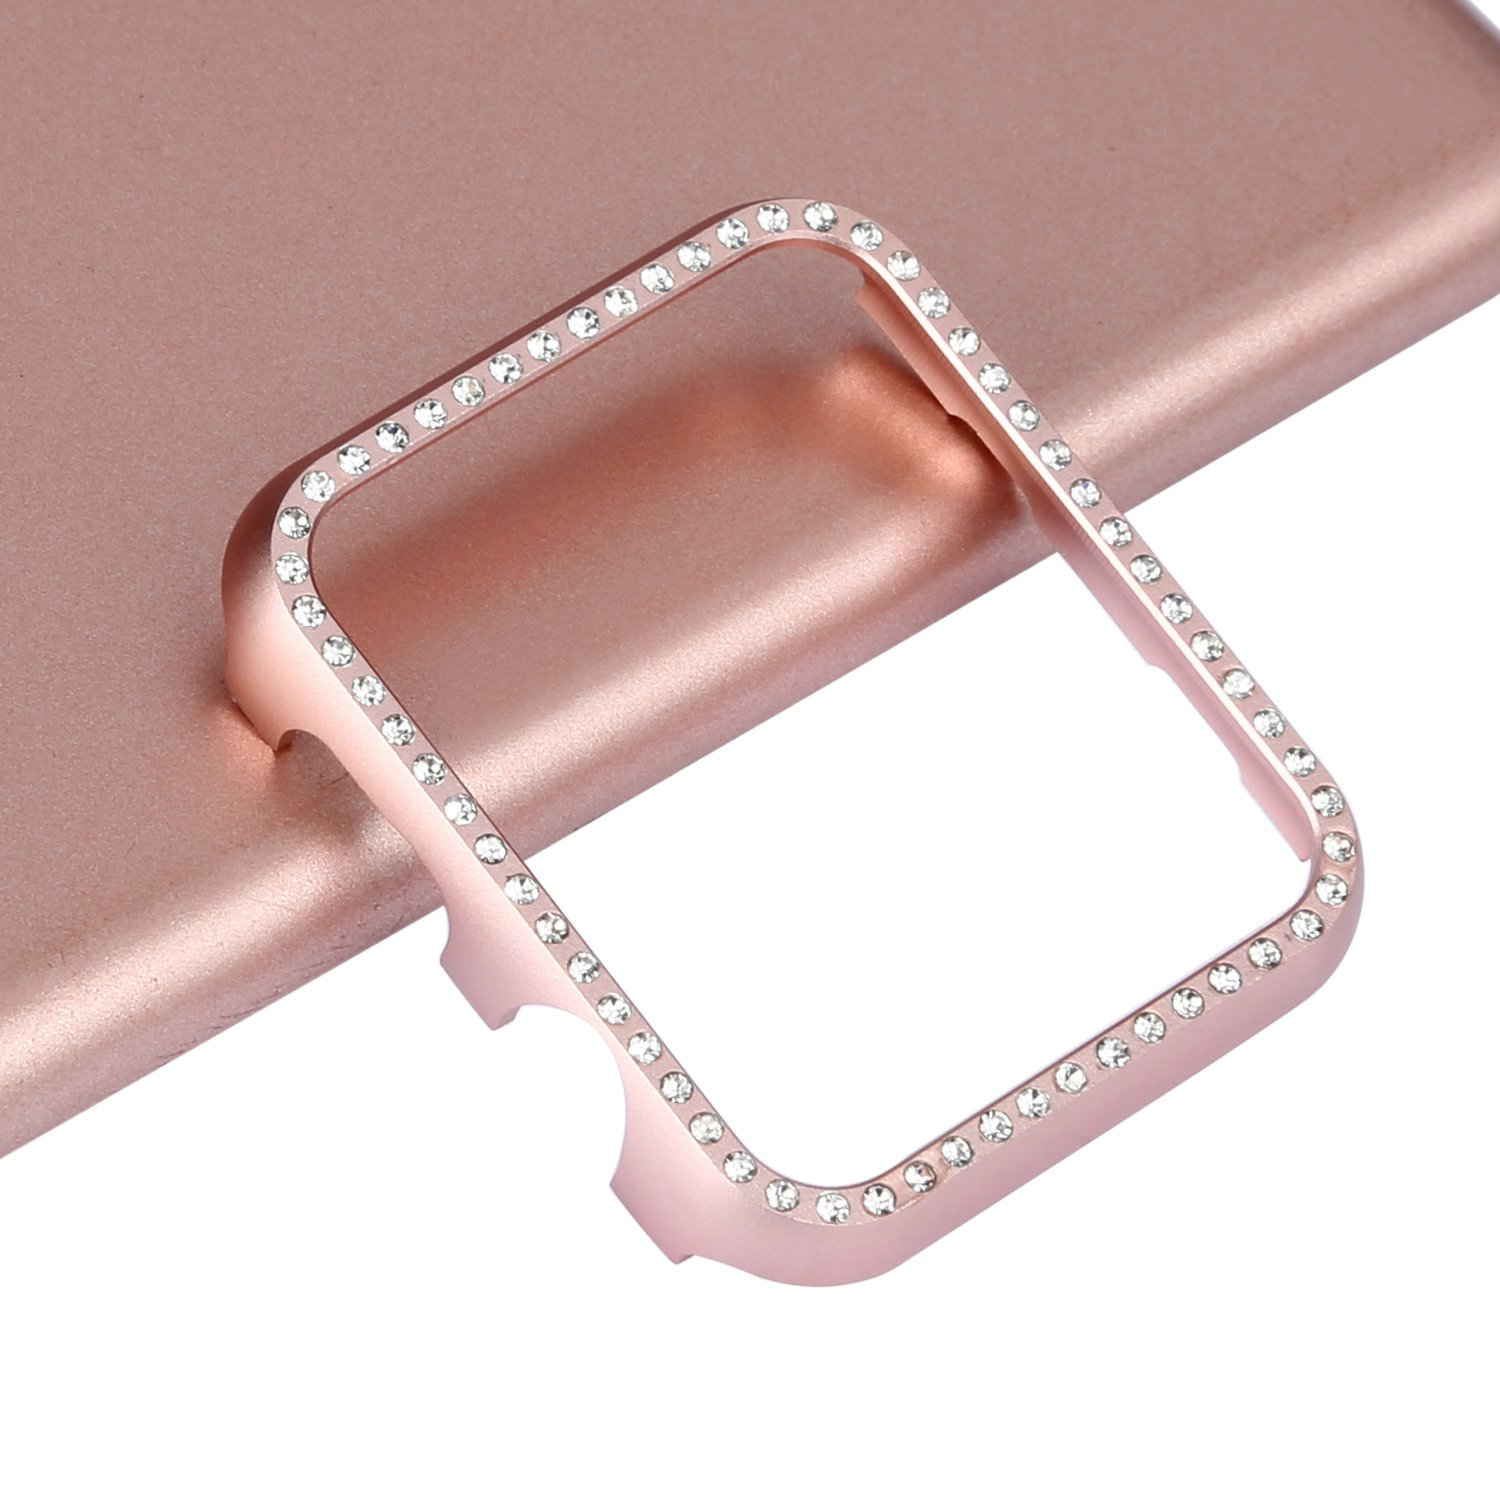 Apple Watch Bumper 42mm, iWatch Crystal Rhinestone Diamond Aluminum Case Shell Protective Frame Cover for 42mm Apple Watch Series 3/2/1 - Rose Gold by Clatune (Image #6)